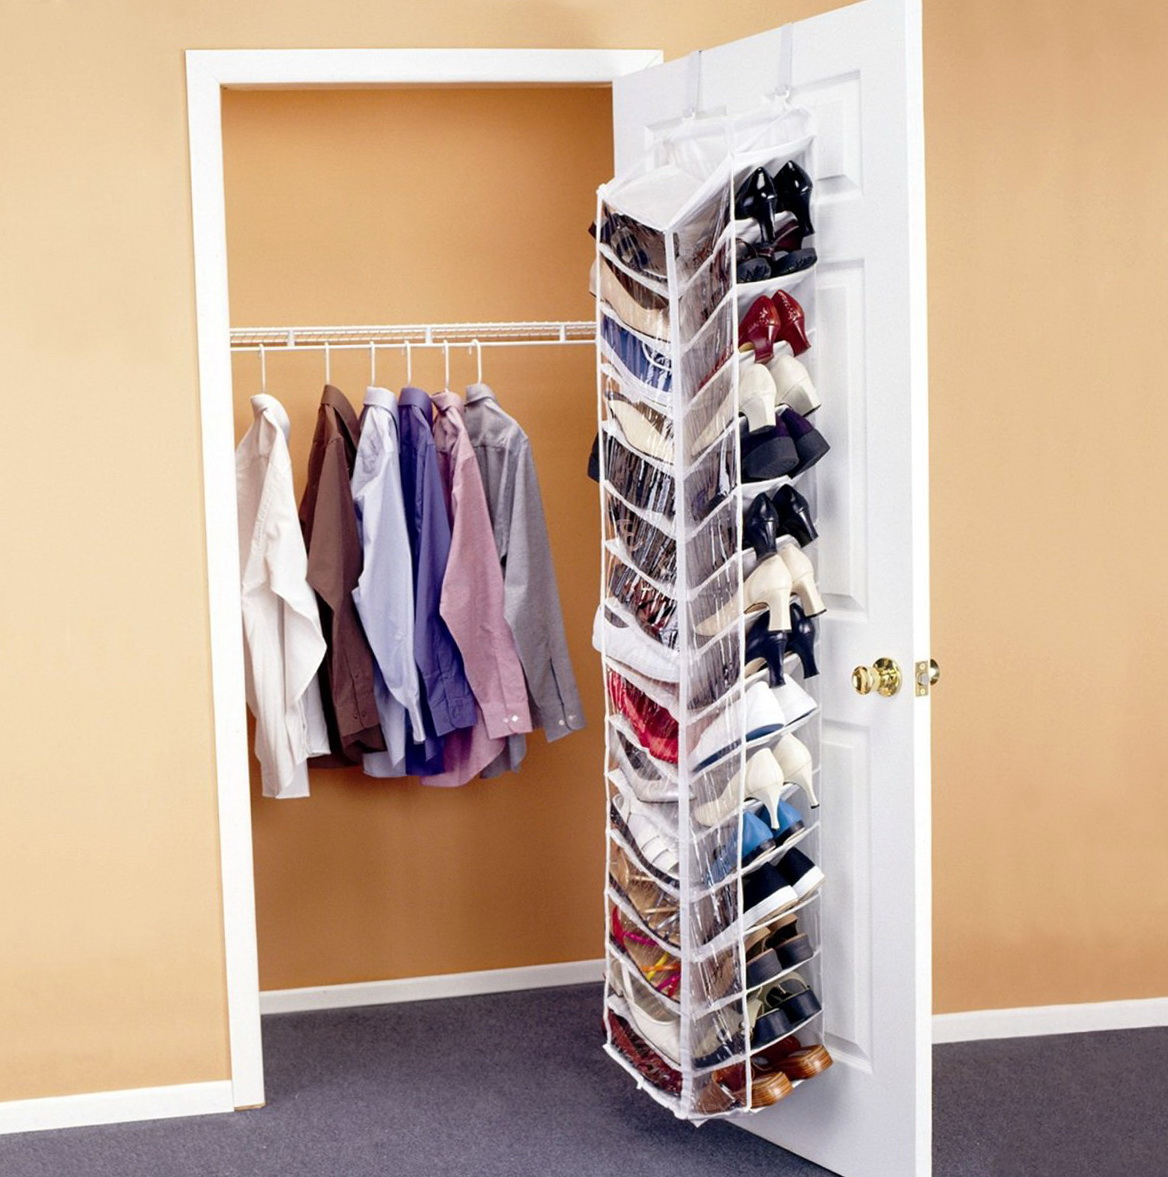 Closet Door Ideas For Small Space Home Design Ideas